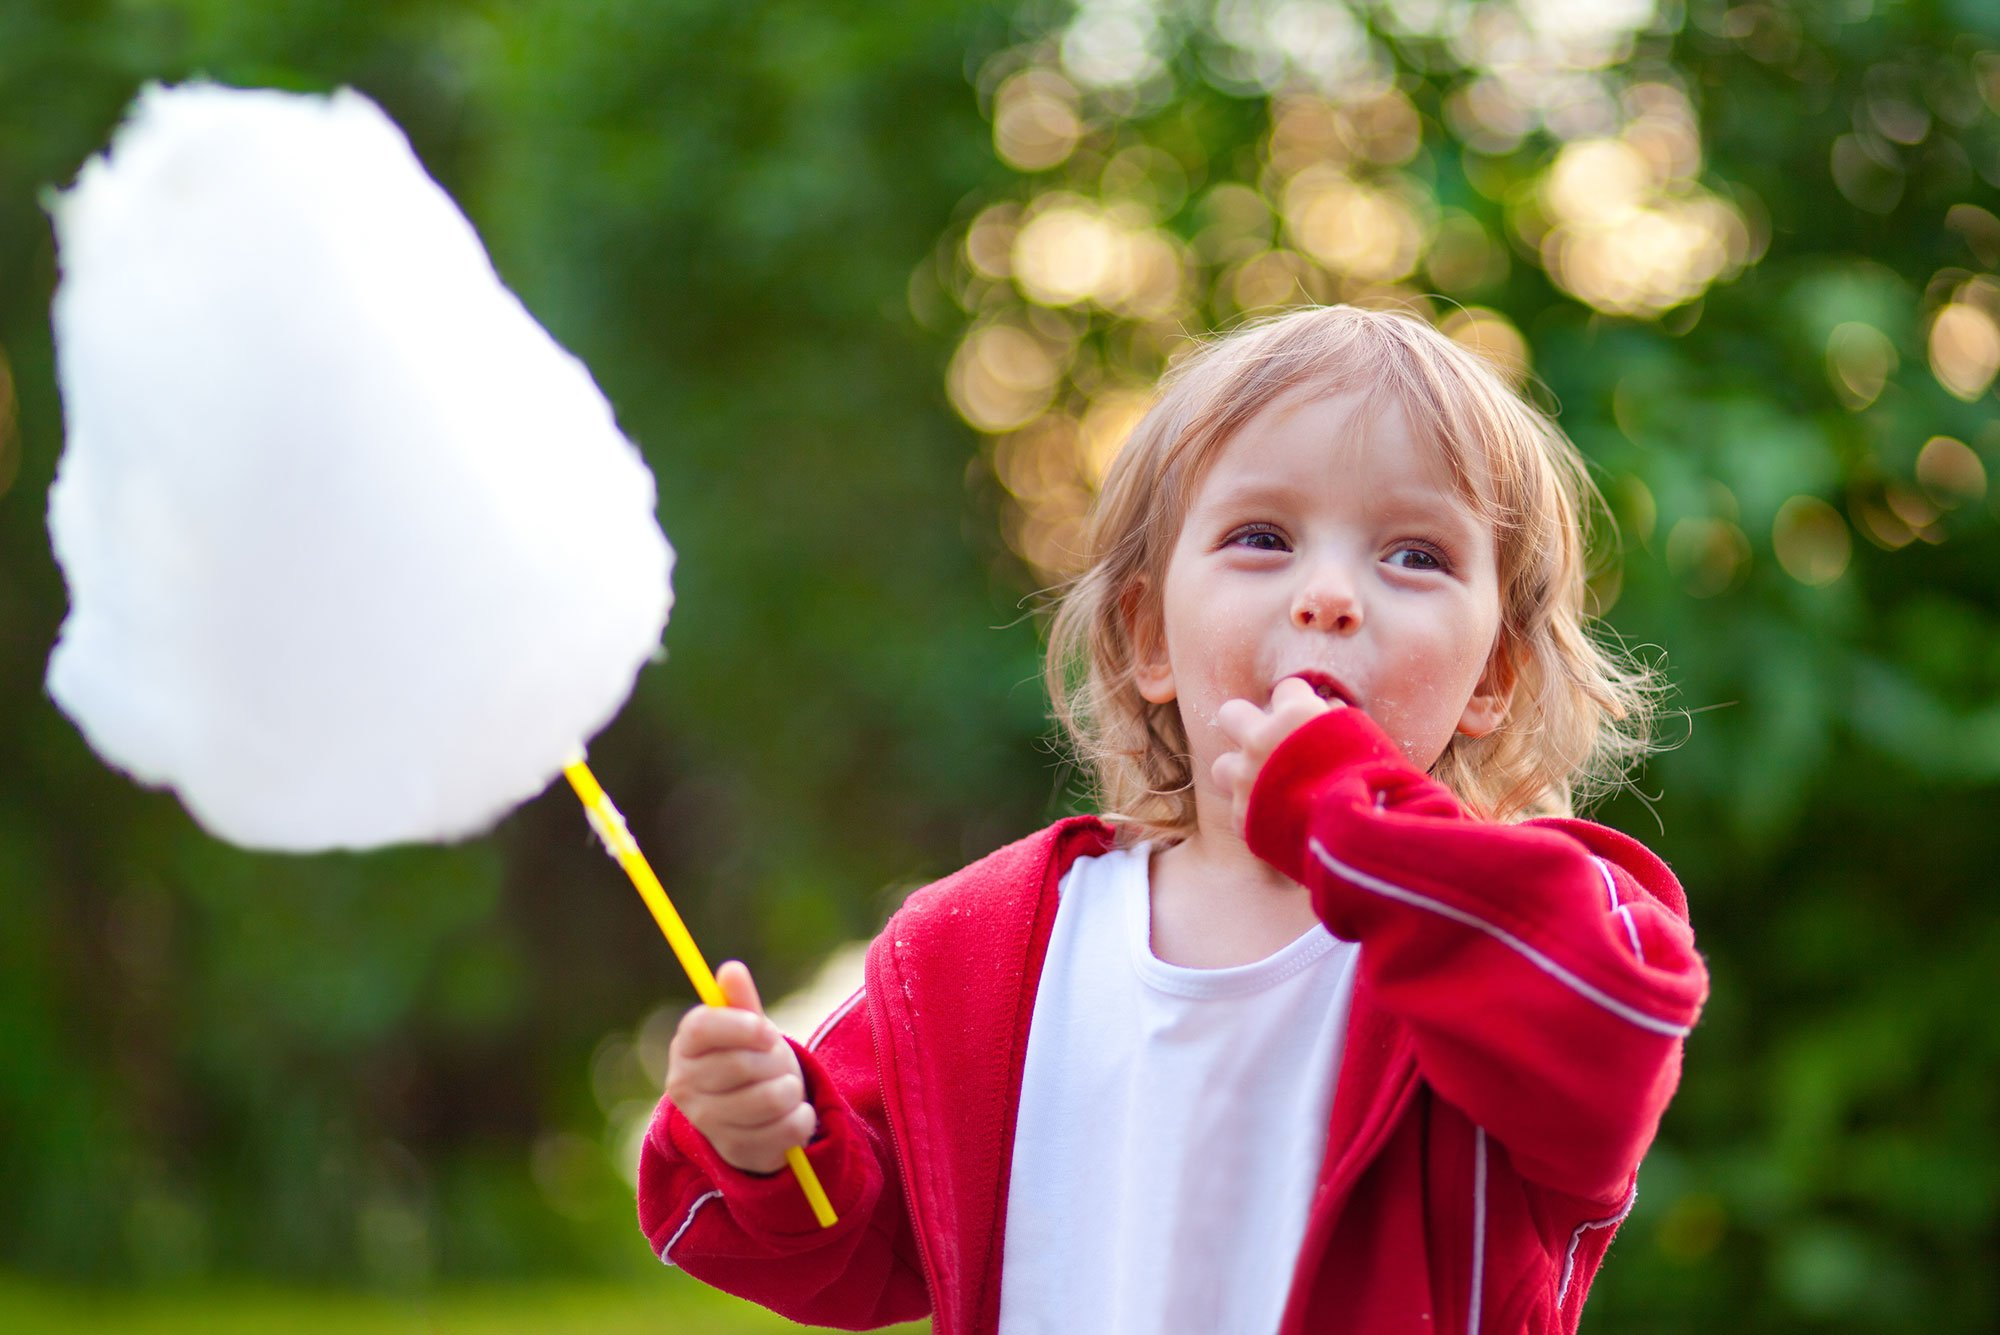 Cotton candy on a stick being eaten by a small child